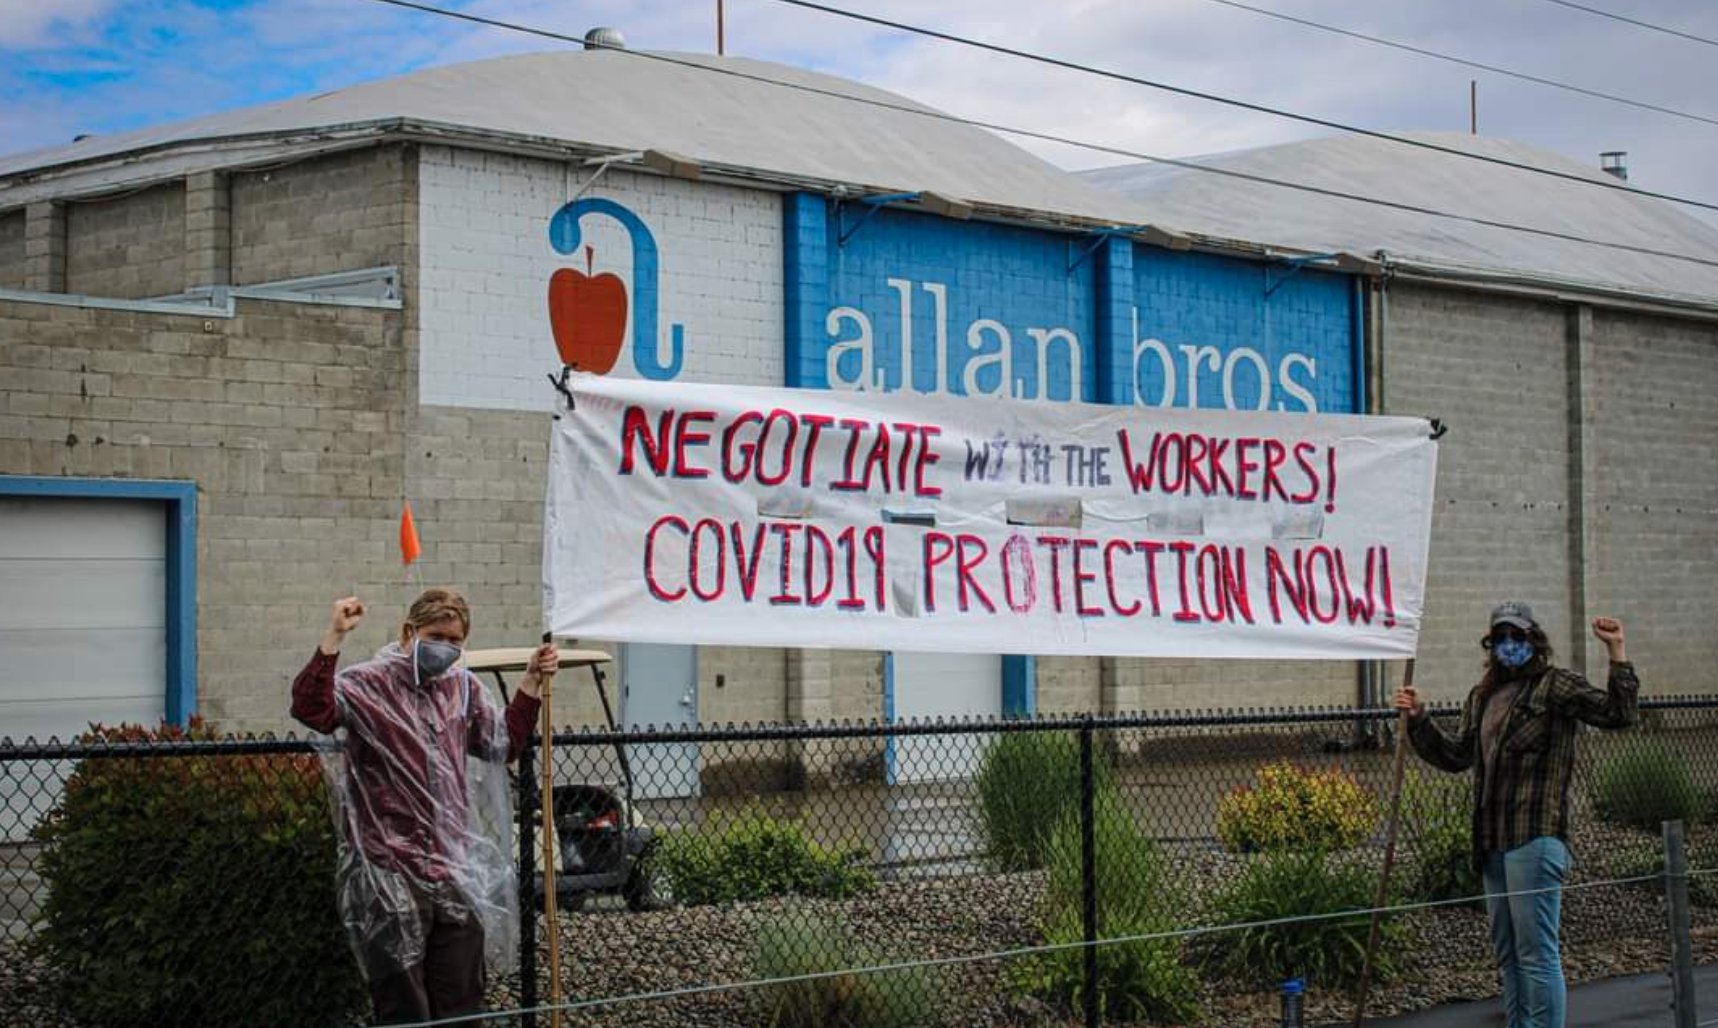 Washington fruit packing workers fight for higher pay, benefits, and better working conditions